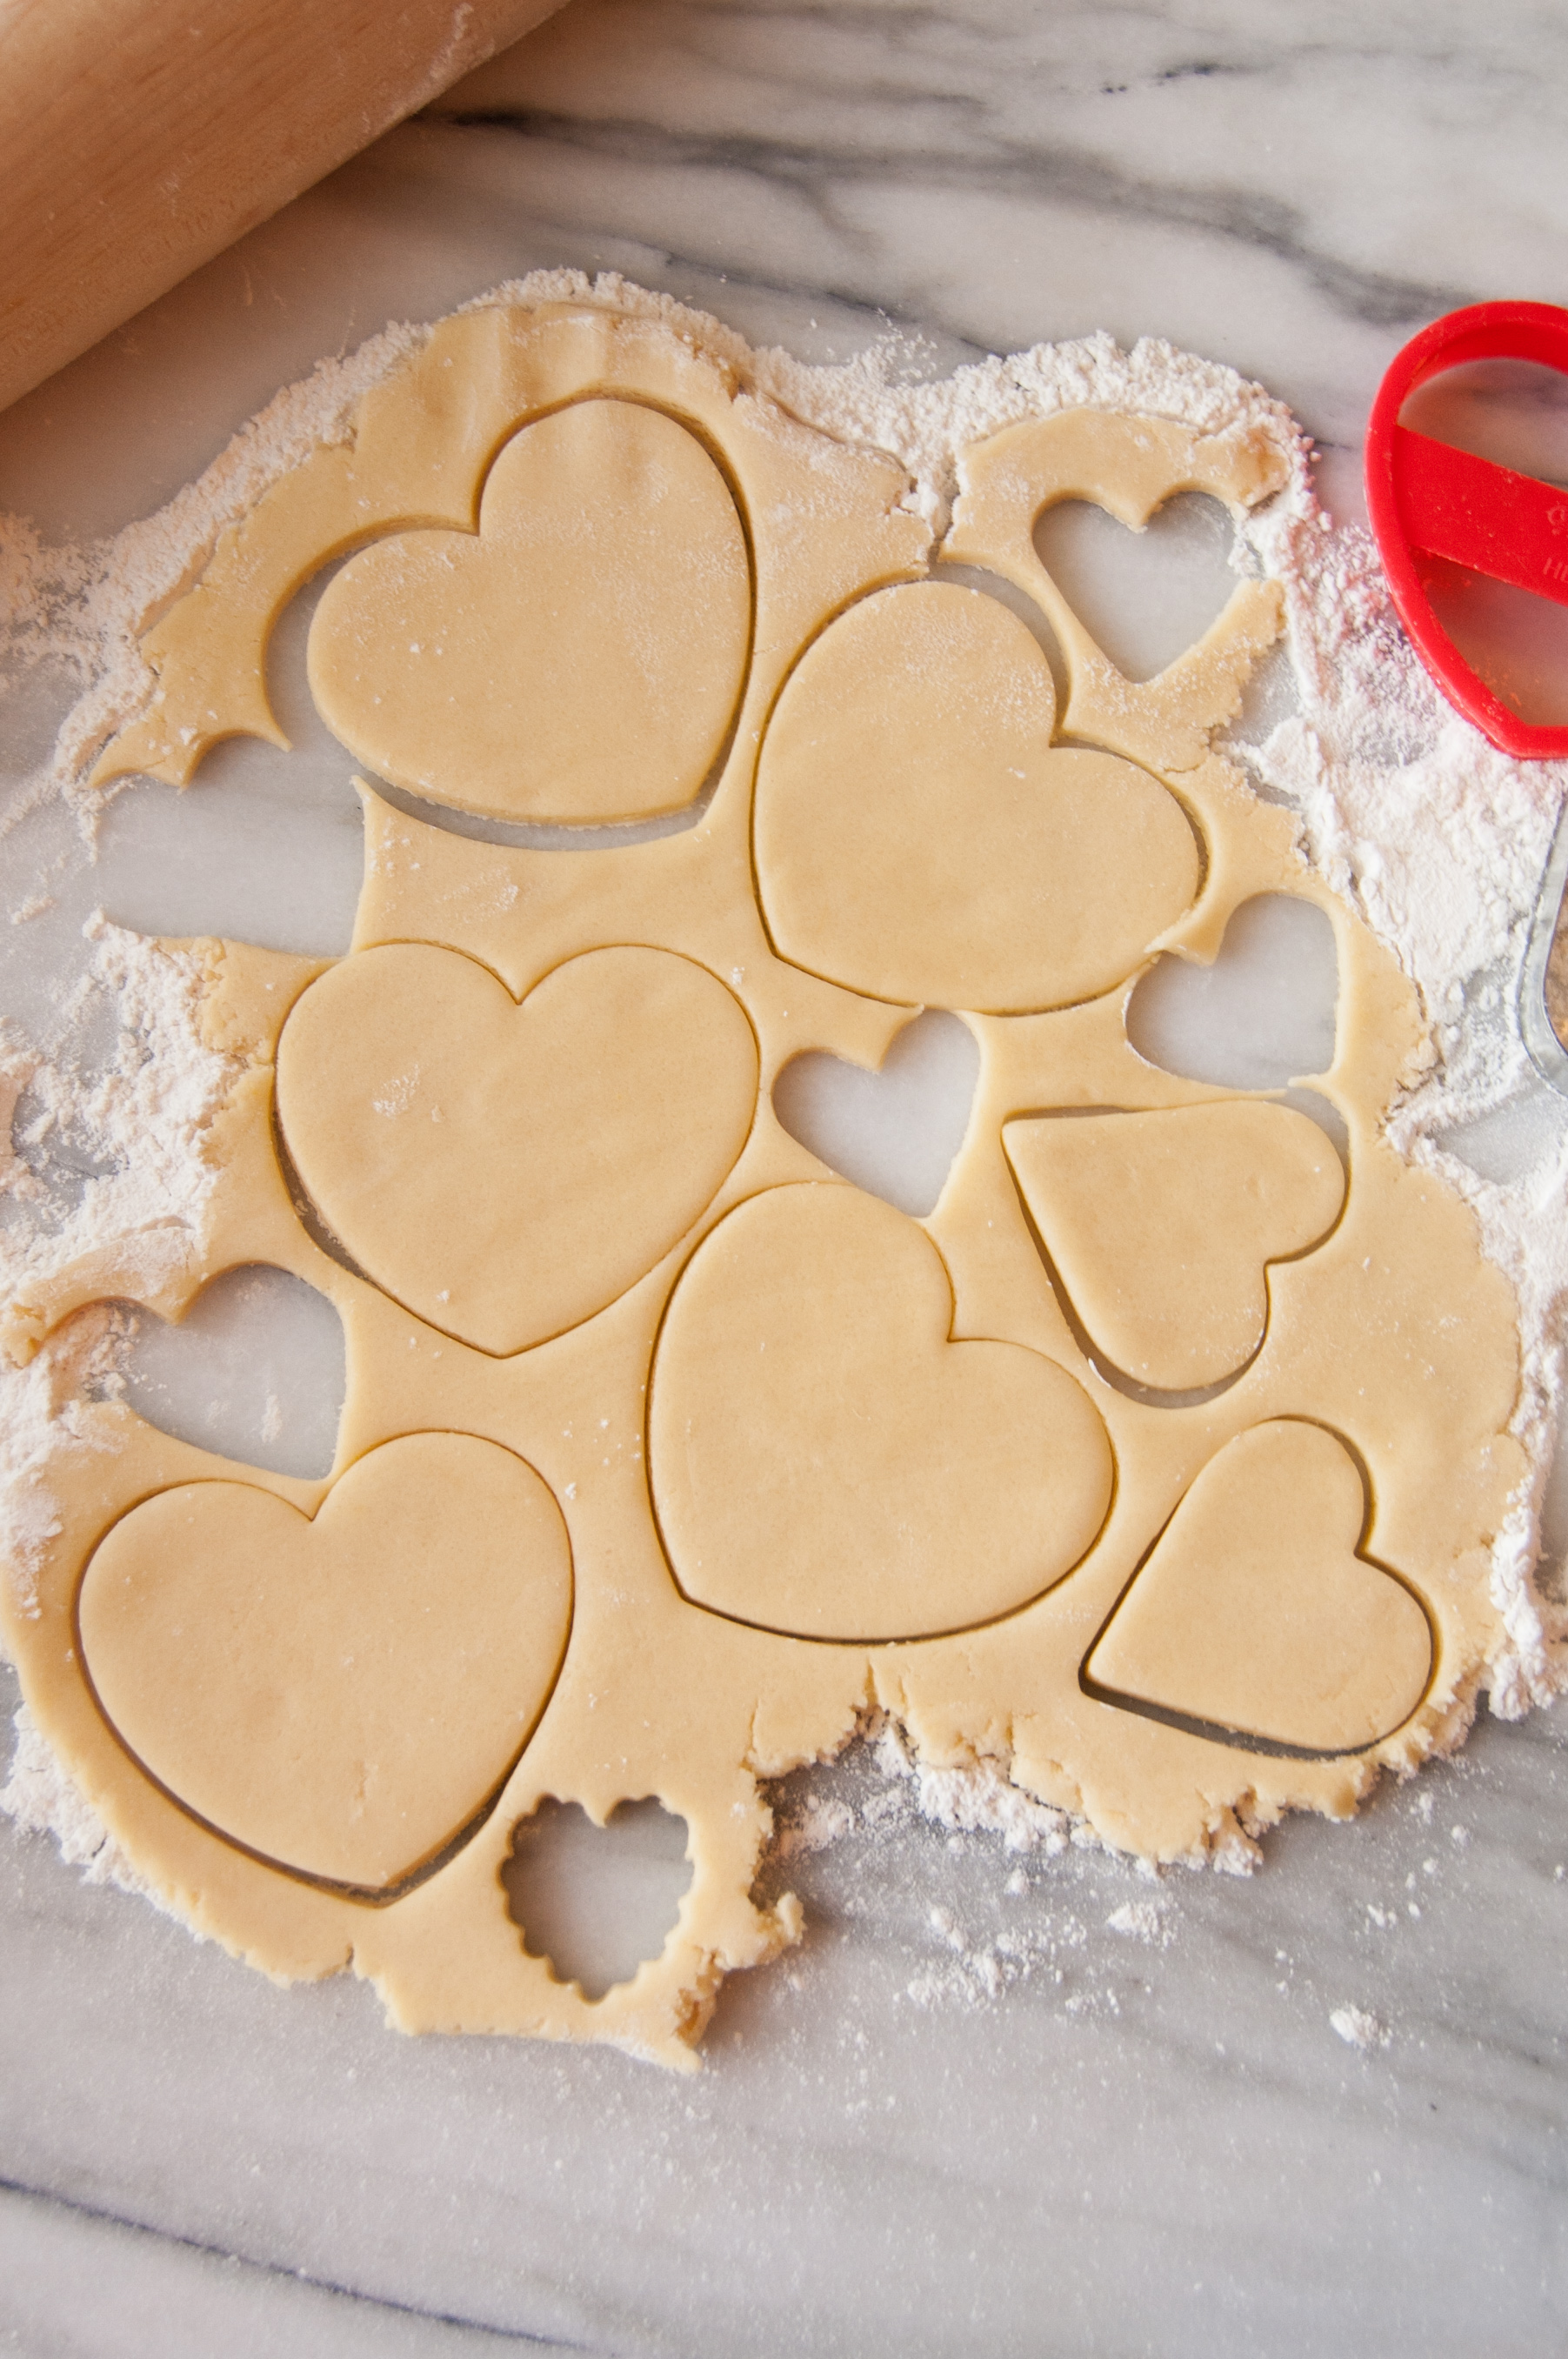 Sugar Cookie dough rolled out with hearts cut out